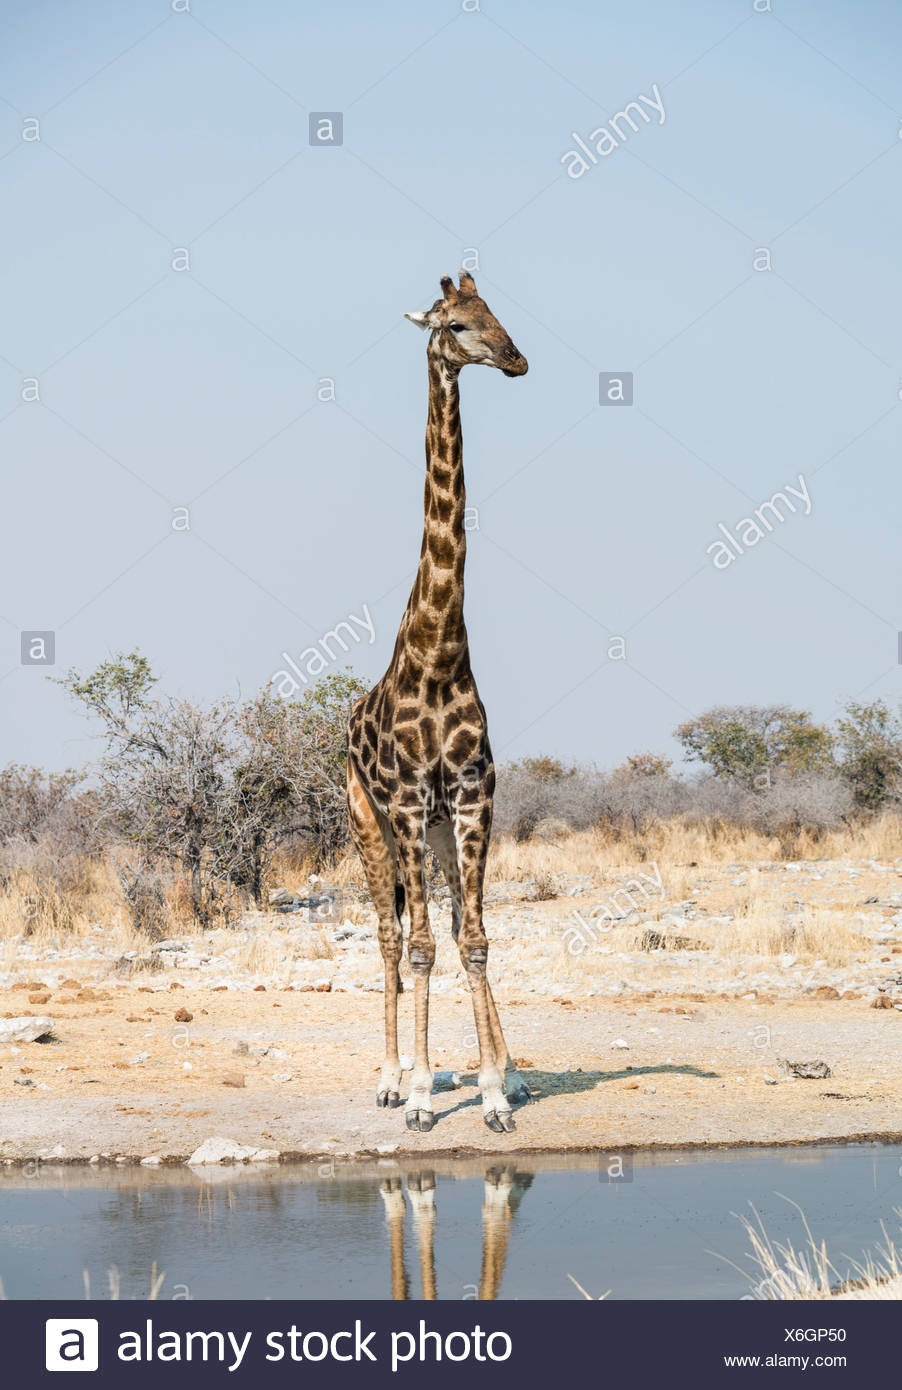 Girafe (Giraffa camelopardalis) à l'Kalkheuwel waterhole, Etosha National Park, Namibie Photo Stock